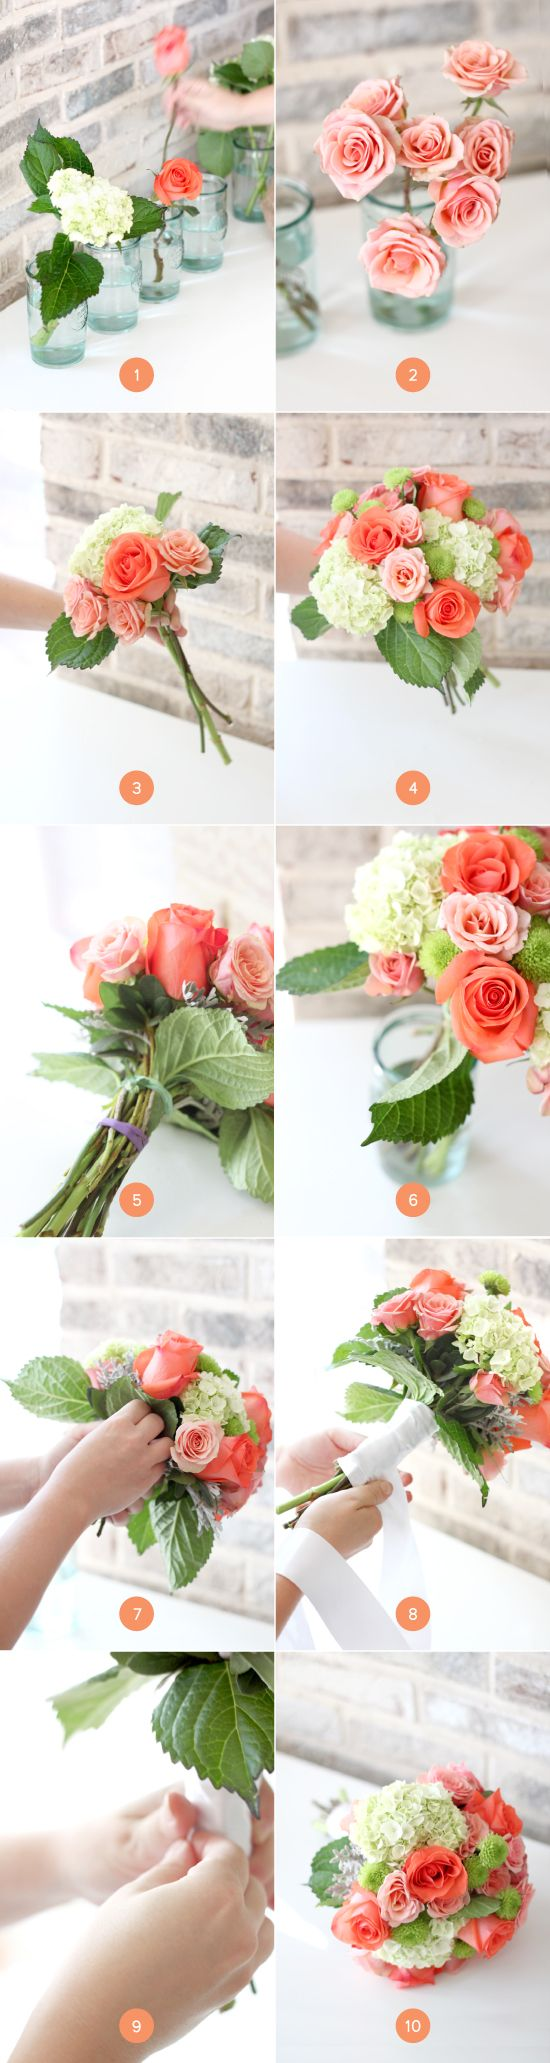 DIY Grocery Store Bridal Bouquet: